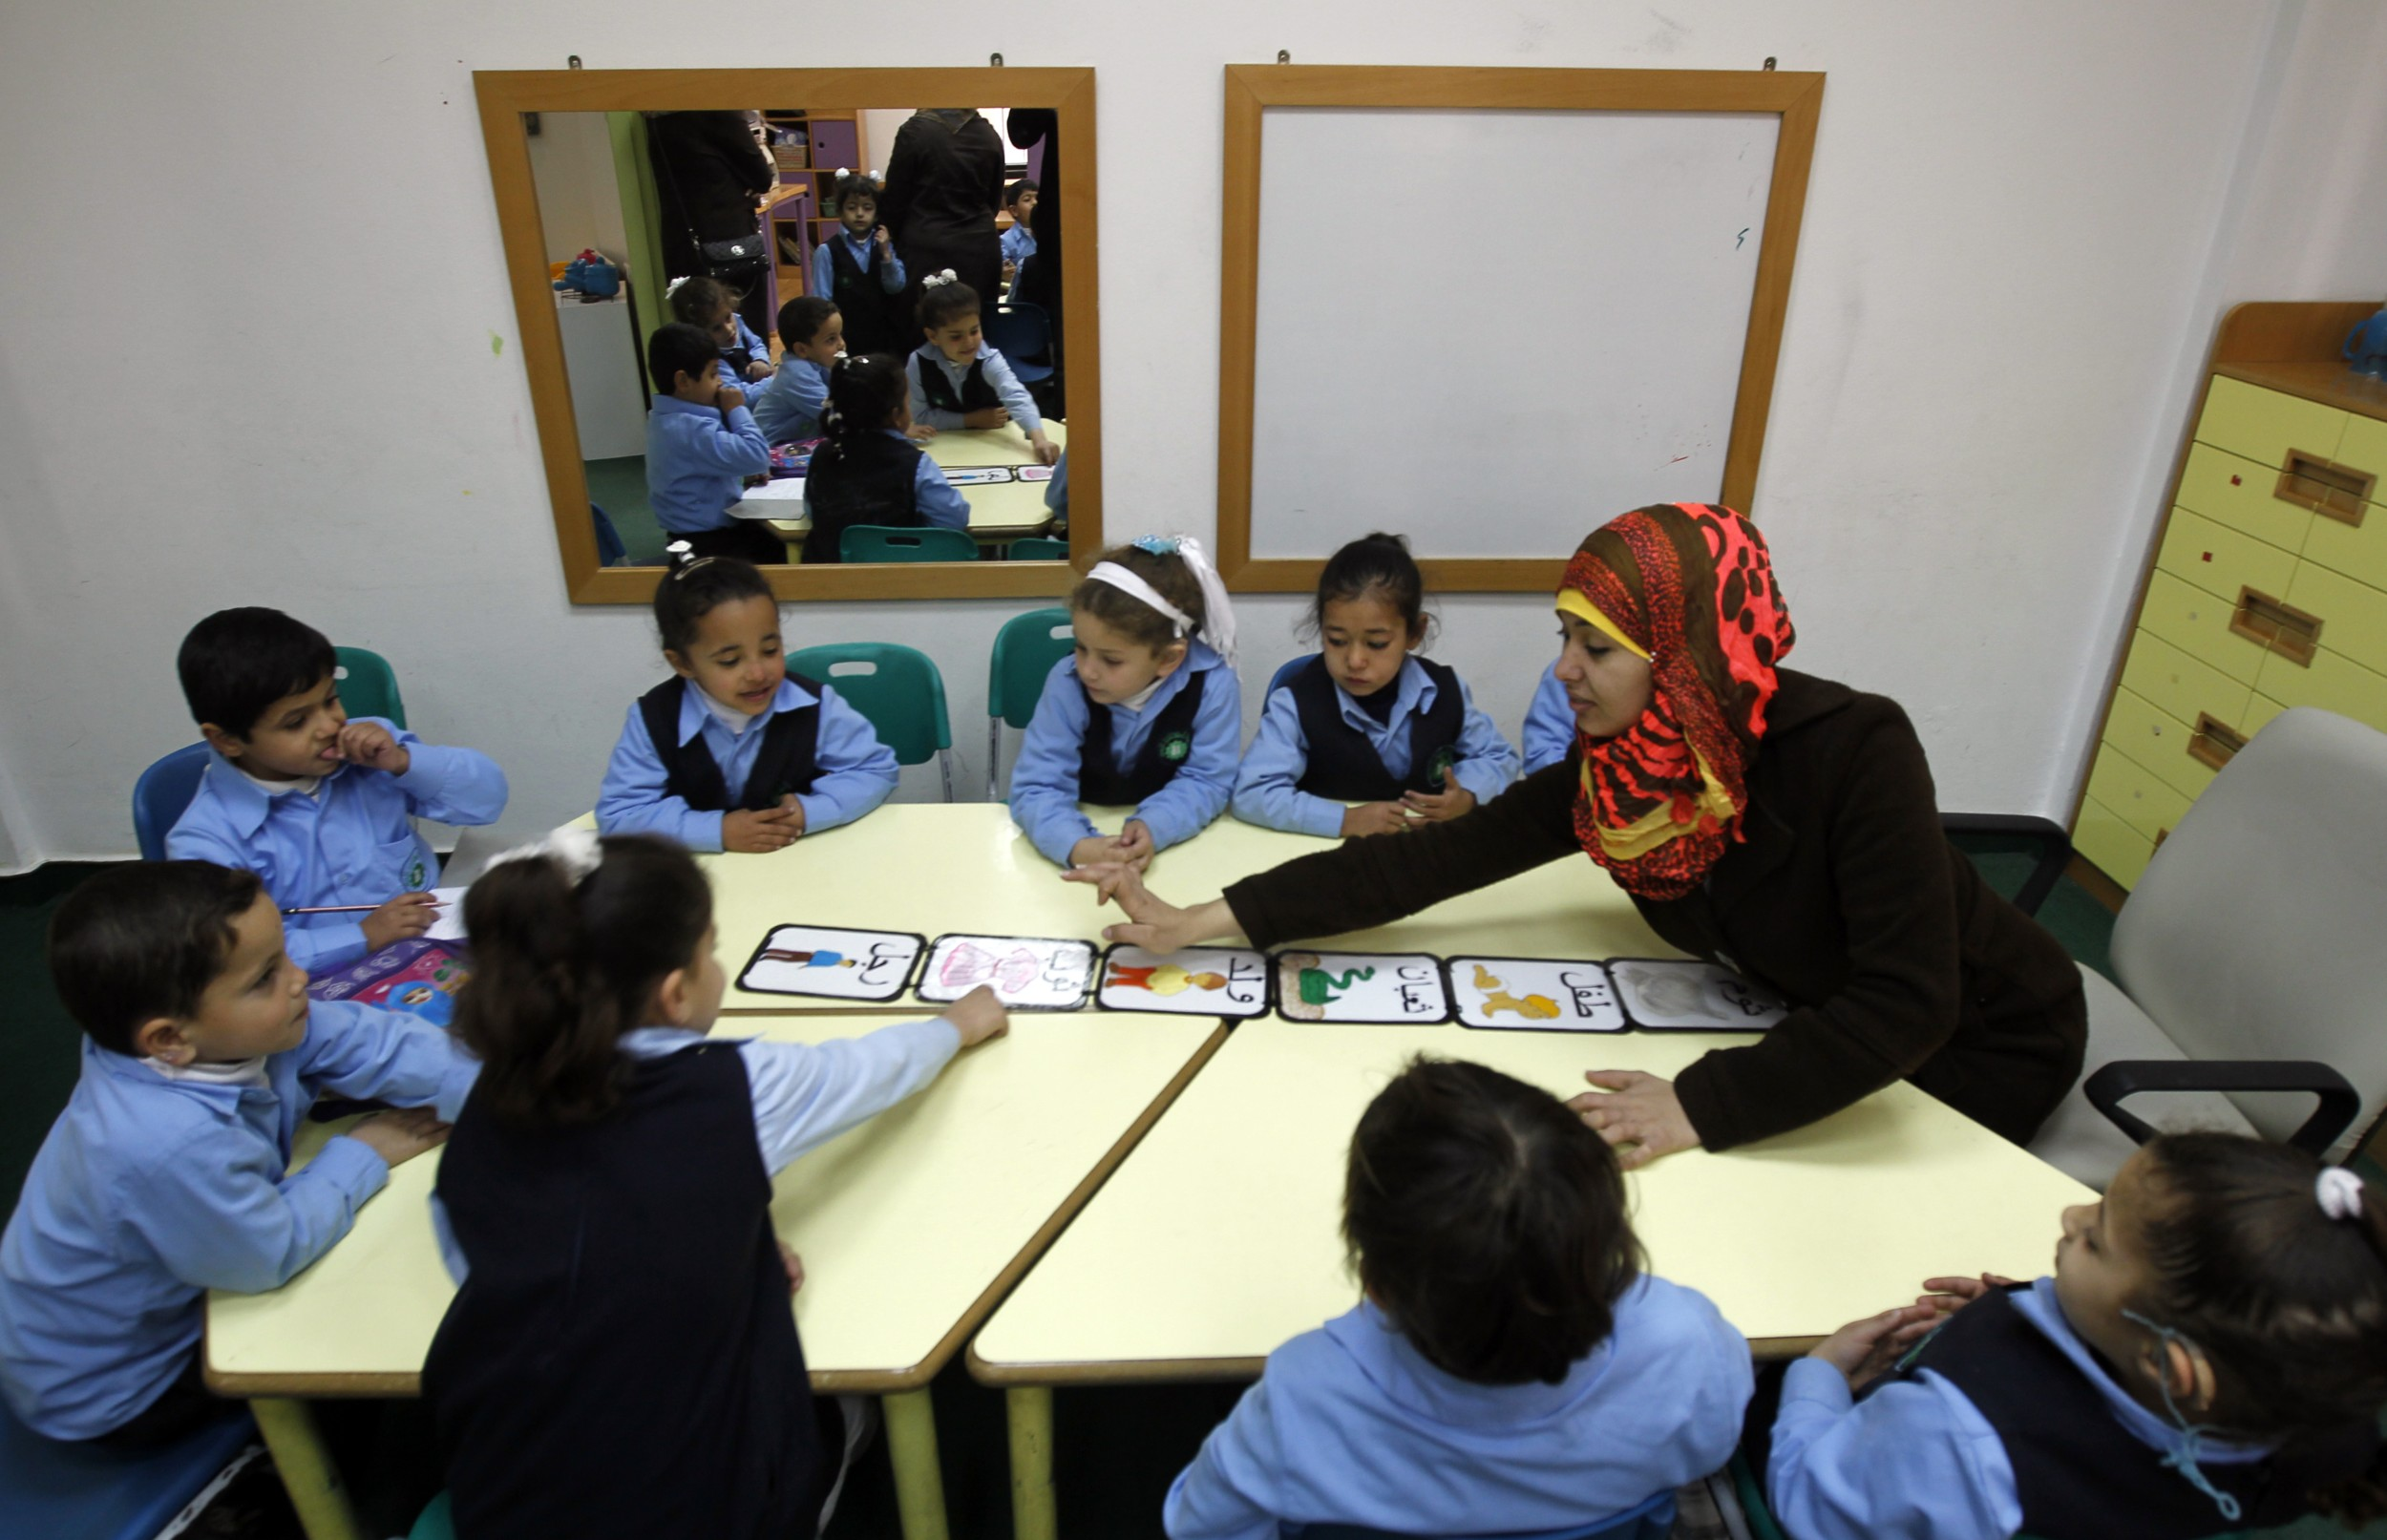 A deaf Palestinian woman teaches hearing impaired children at Atfaluna Society for Deaf Children in Gaza City, on 7 March 2013 (AFP)